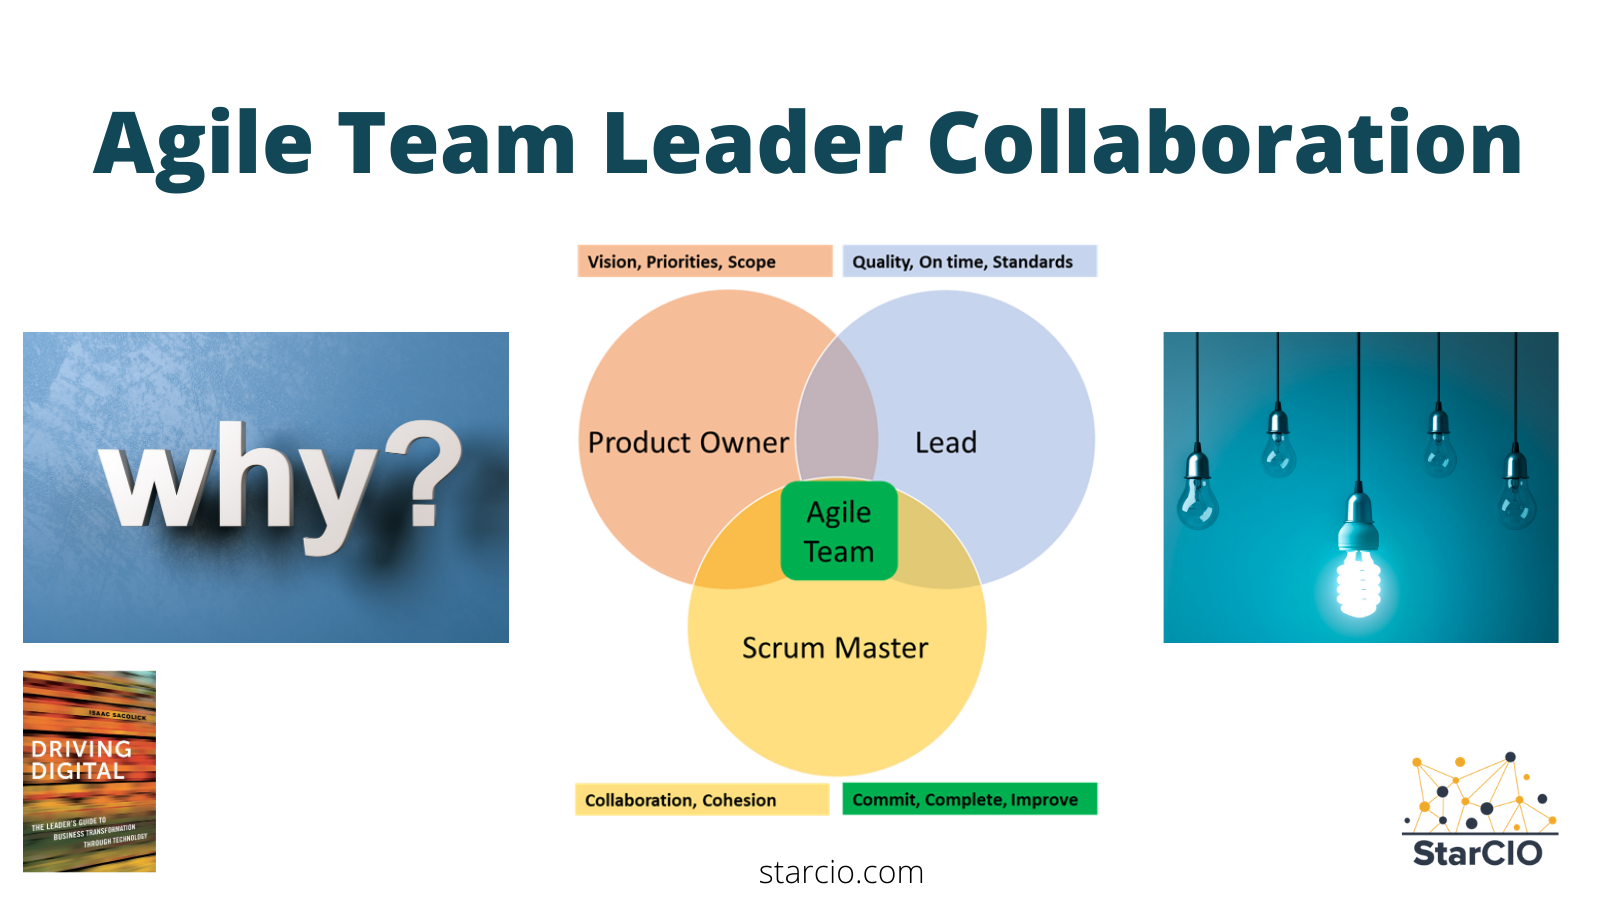 Agile Team Collaboration by Isaac Sacolick